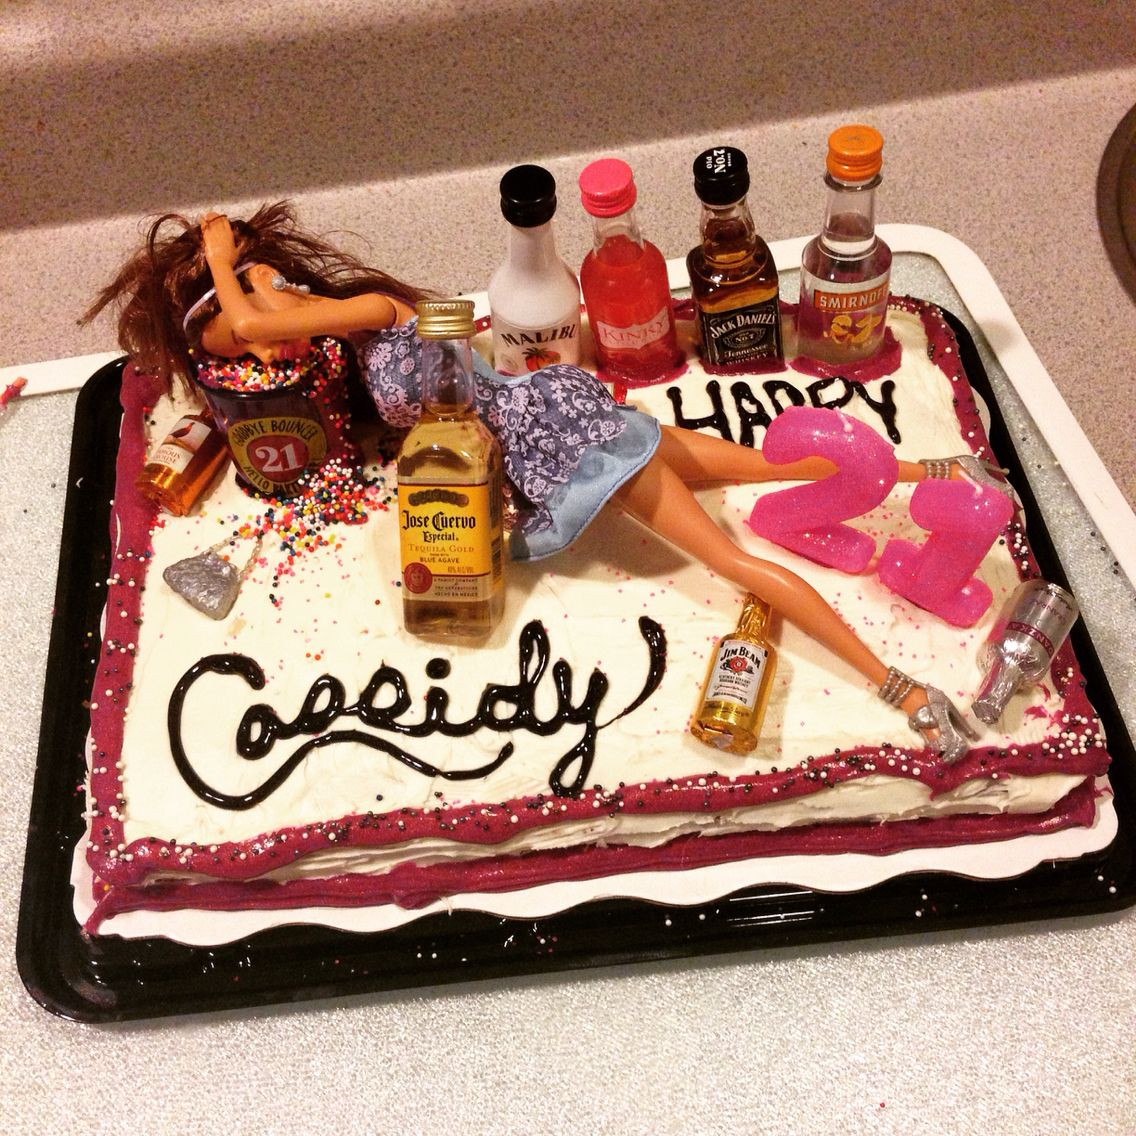 Birthday Gifts For 21 Year Old Women: 21st Birthday Barbie Cake I Made For My Friend! Used A 21